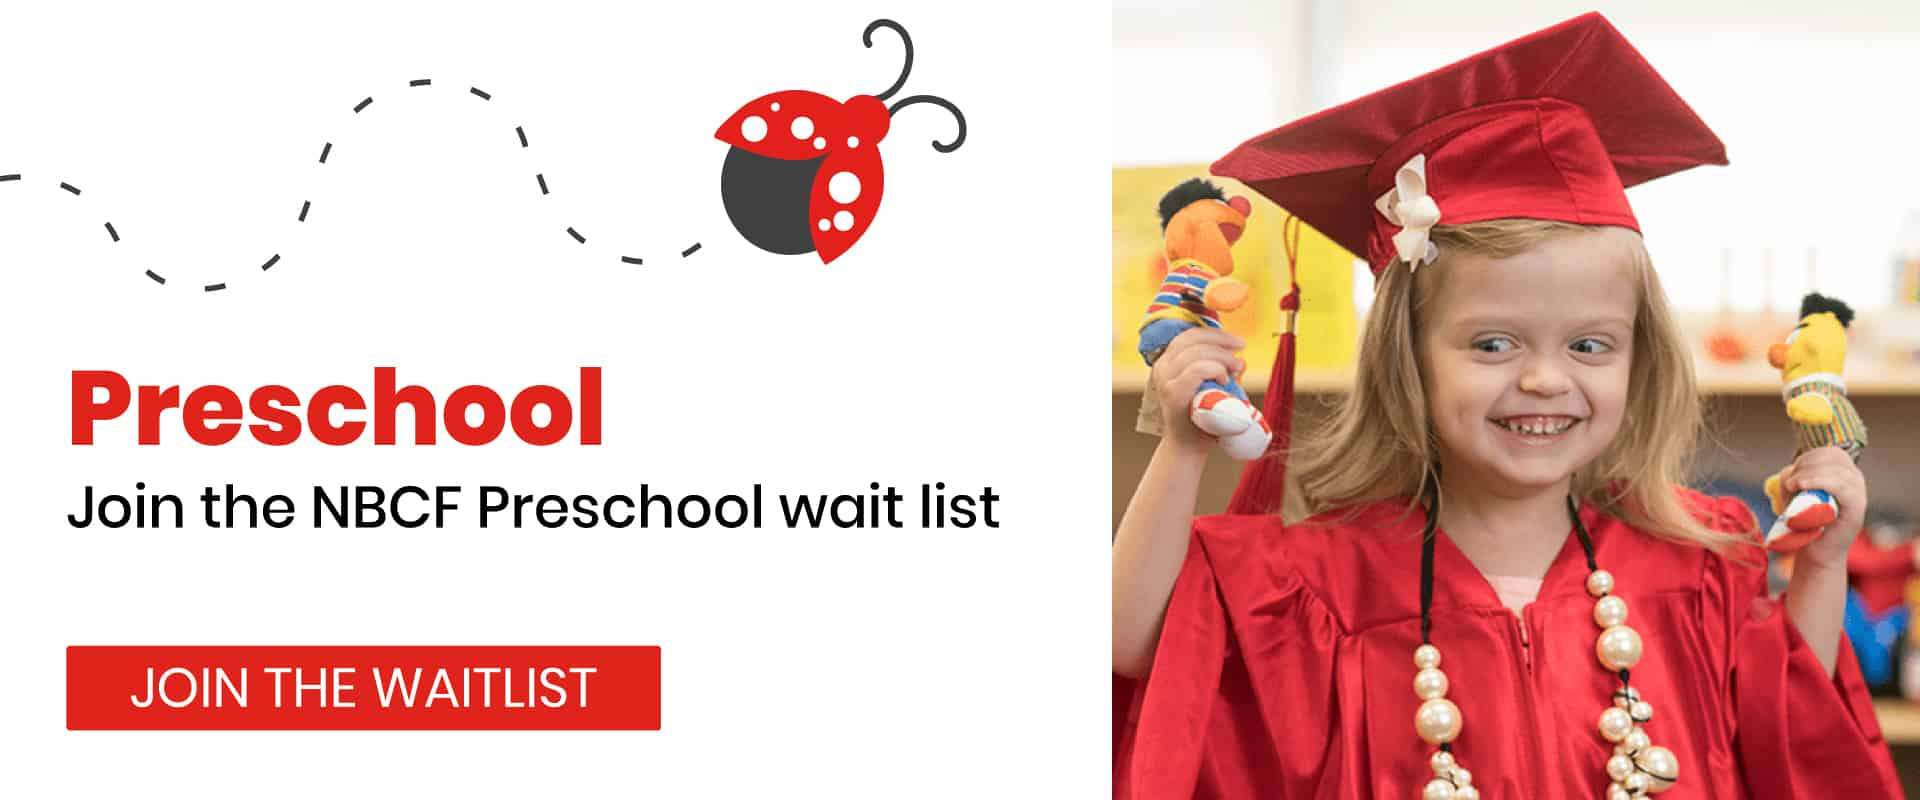 Preschool Waitlist